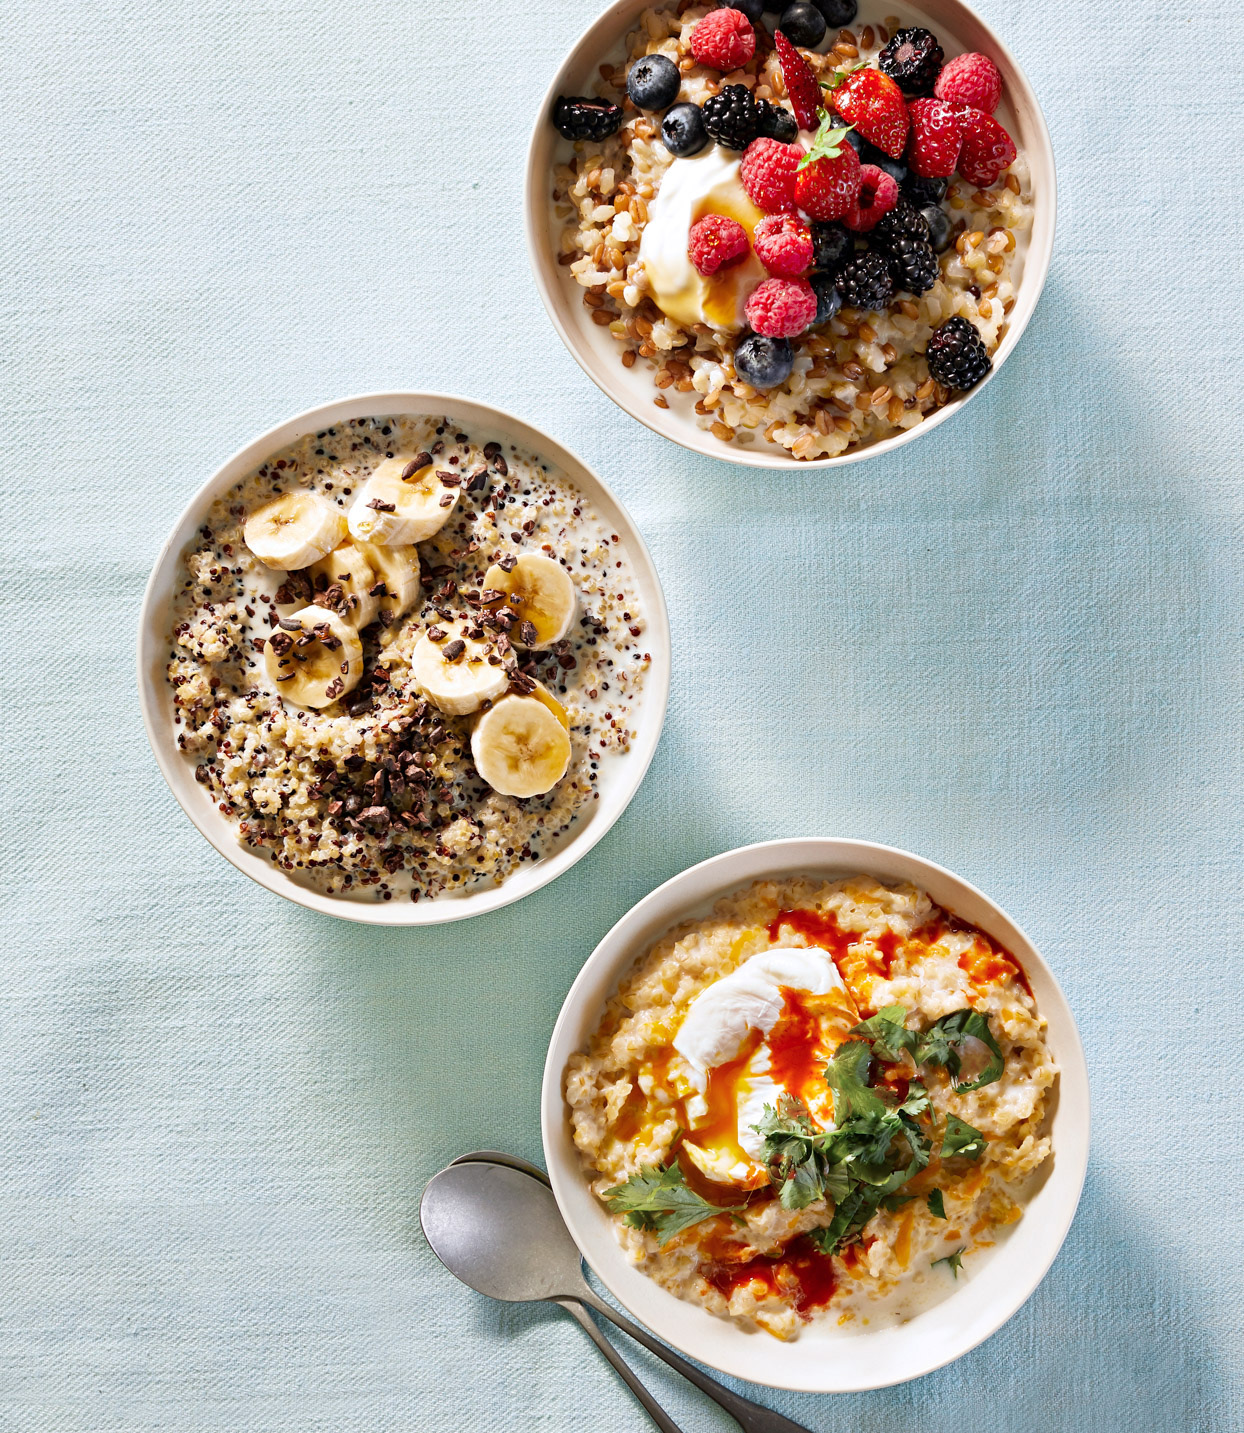 three different types of breakfast bowls on pale blue linen tablecloth